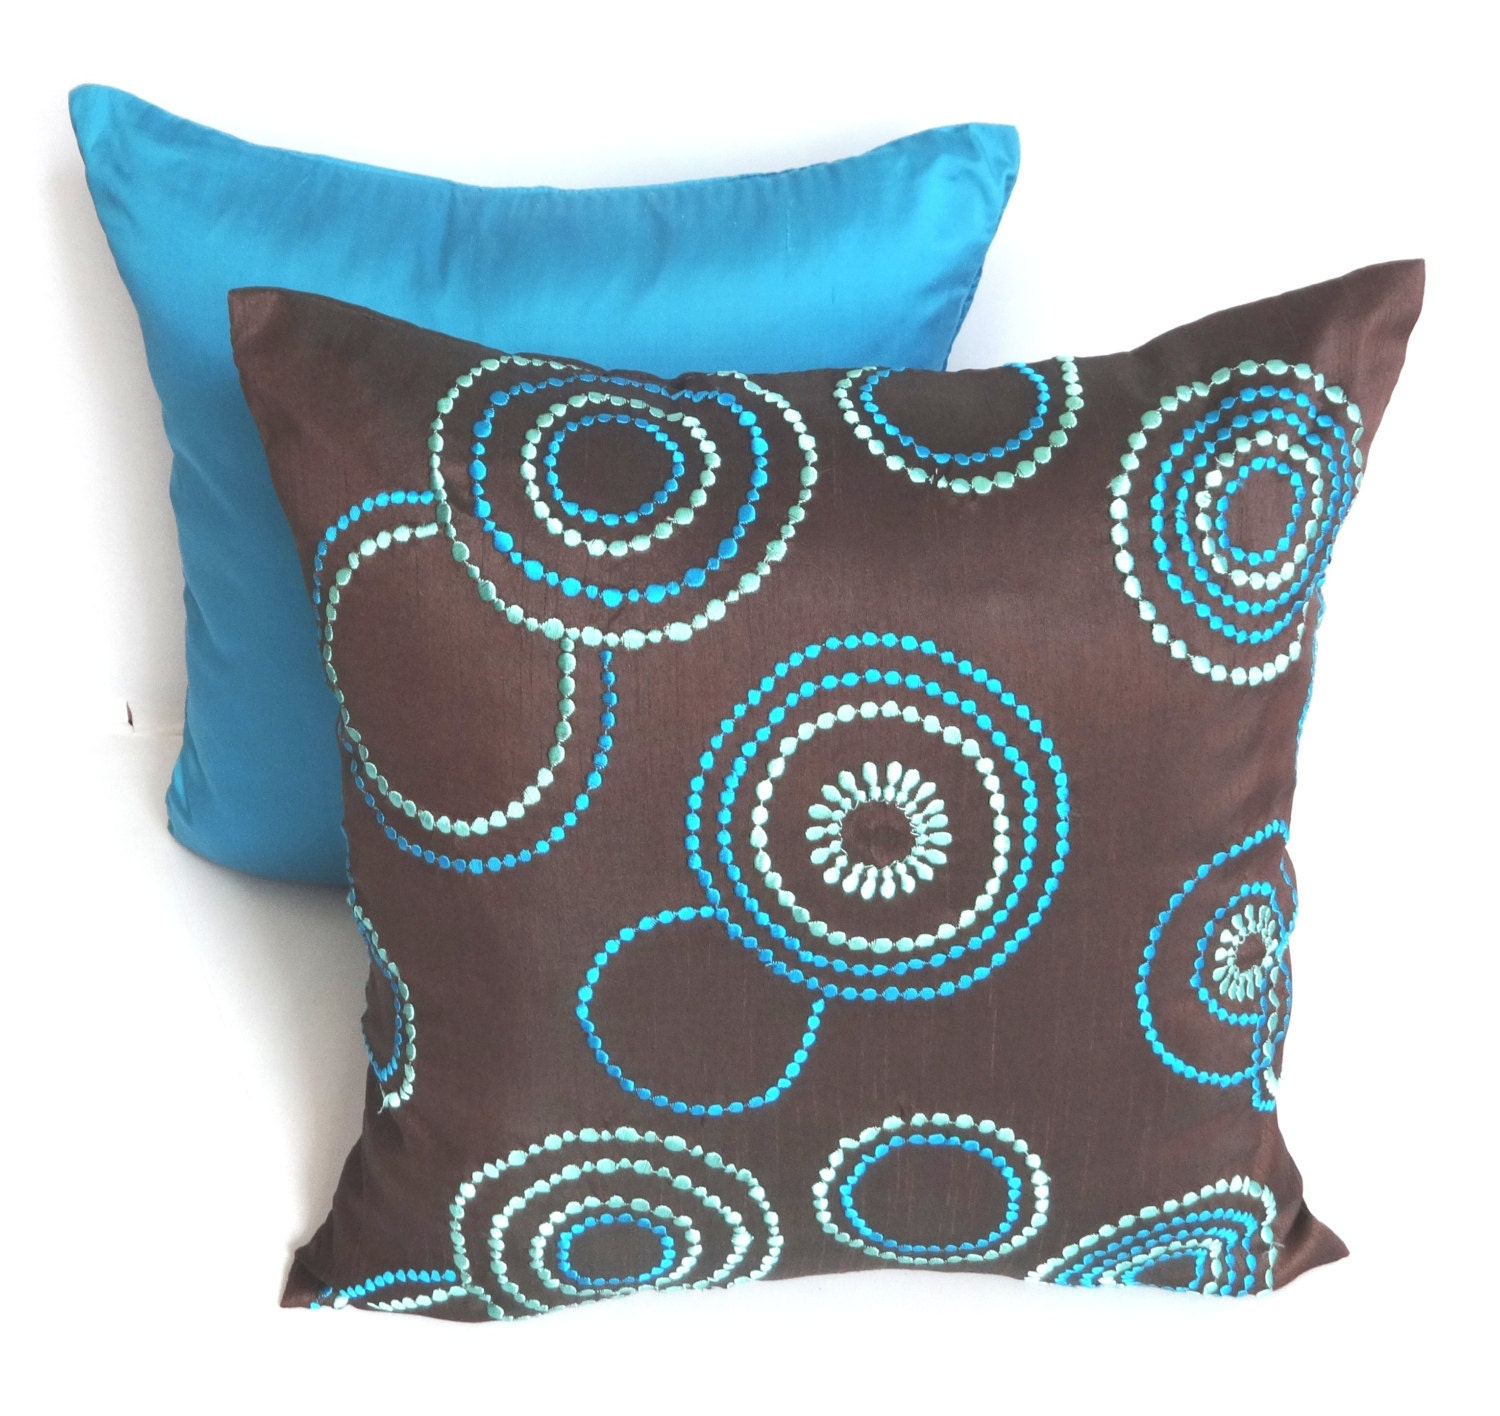 Brown throw pillow embroidered w/ teal blue and aqua blue